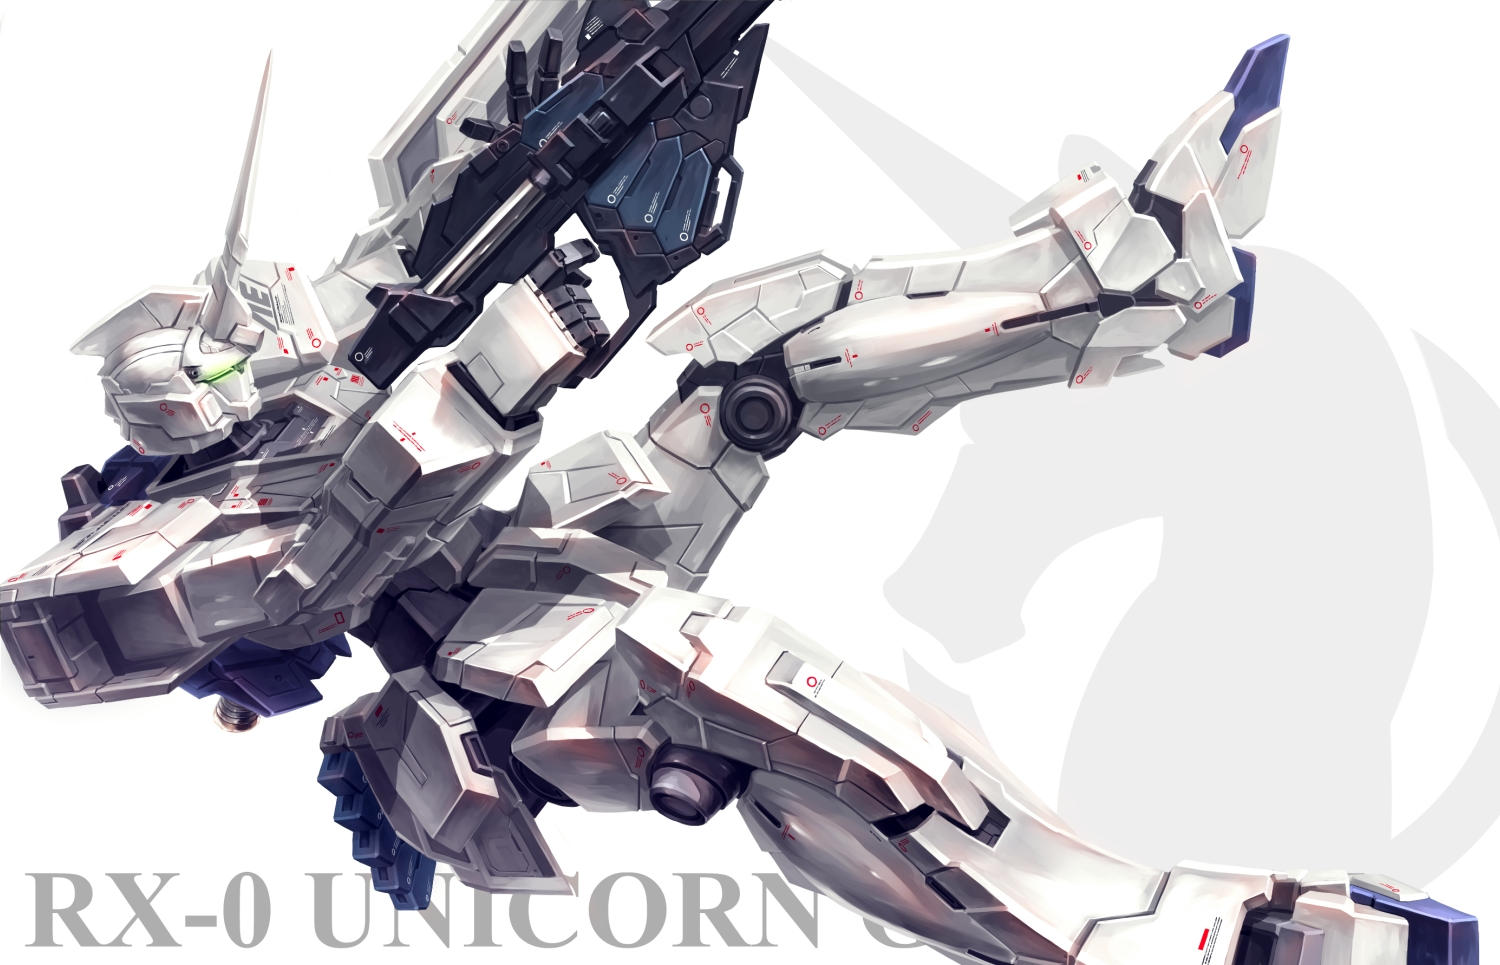 Unicorn Gundam Wallpaper